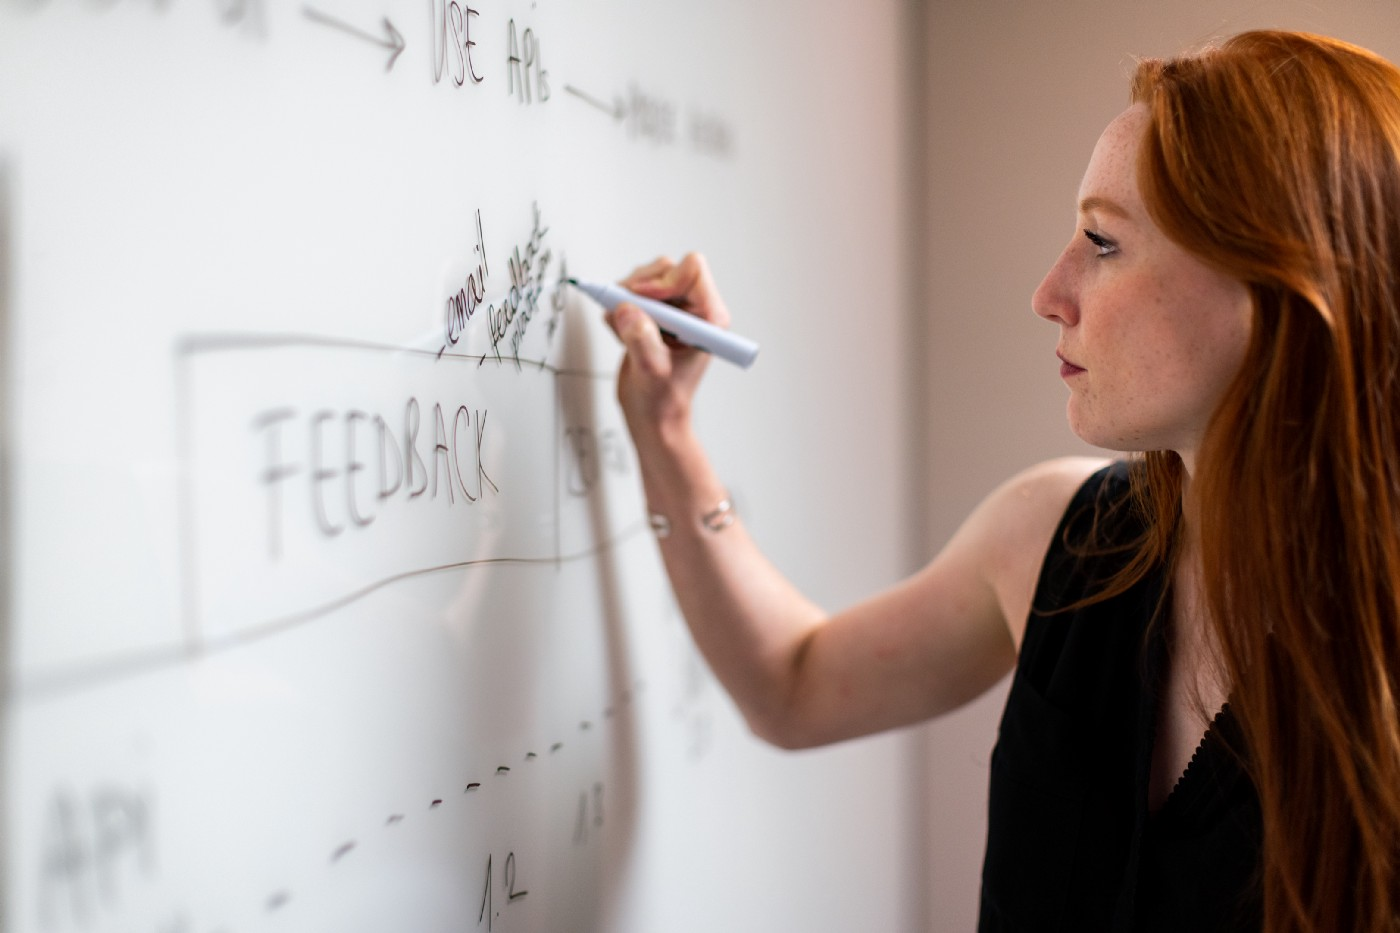 A woman writing on a white board.